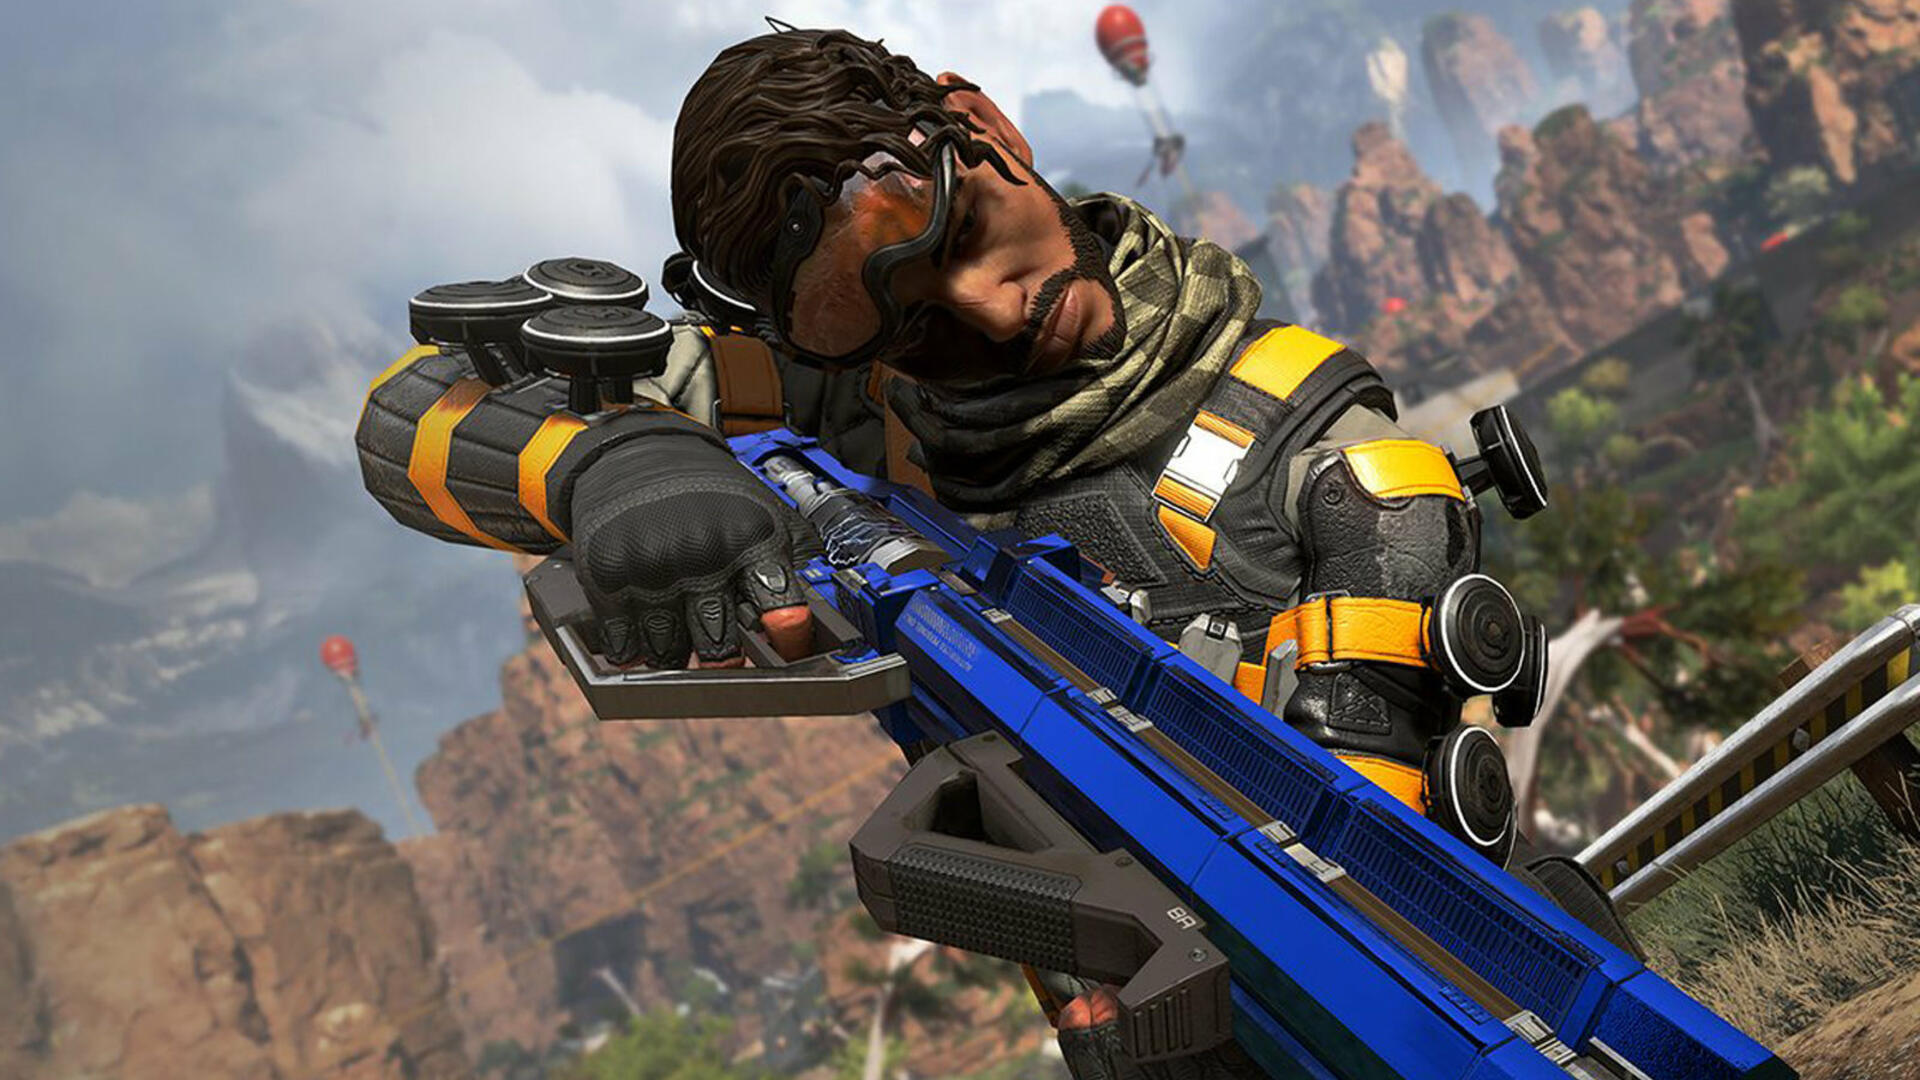 A Professional Chef Really Hated Apex Legends' Pork Chop Recipe